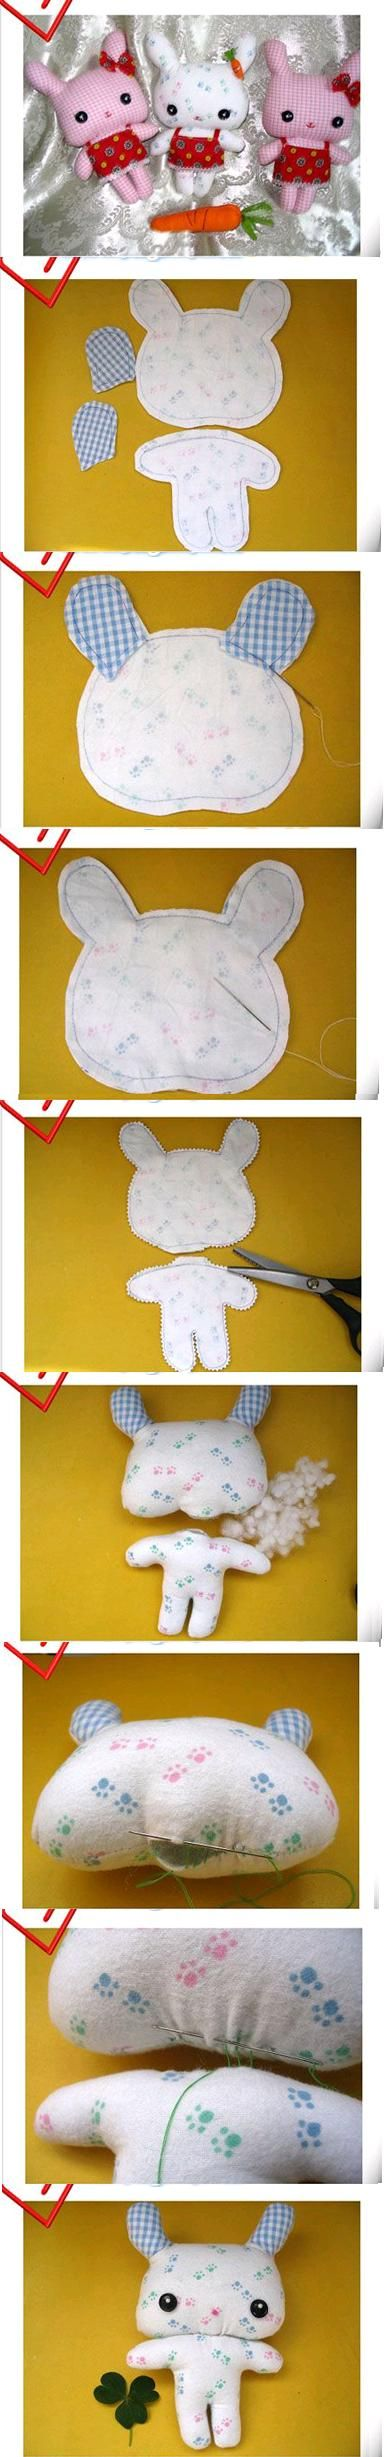 DIY Cute Fabric Bunny easter rabbit pictoral pattern to make cute kawaii bunny toy design